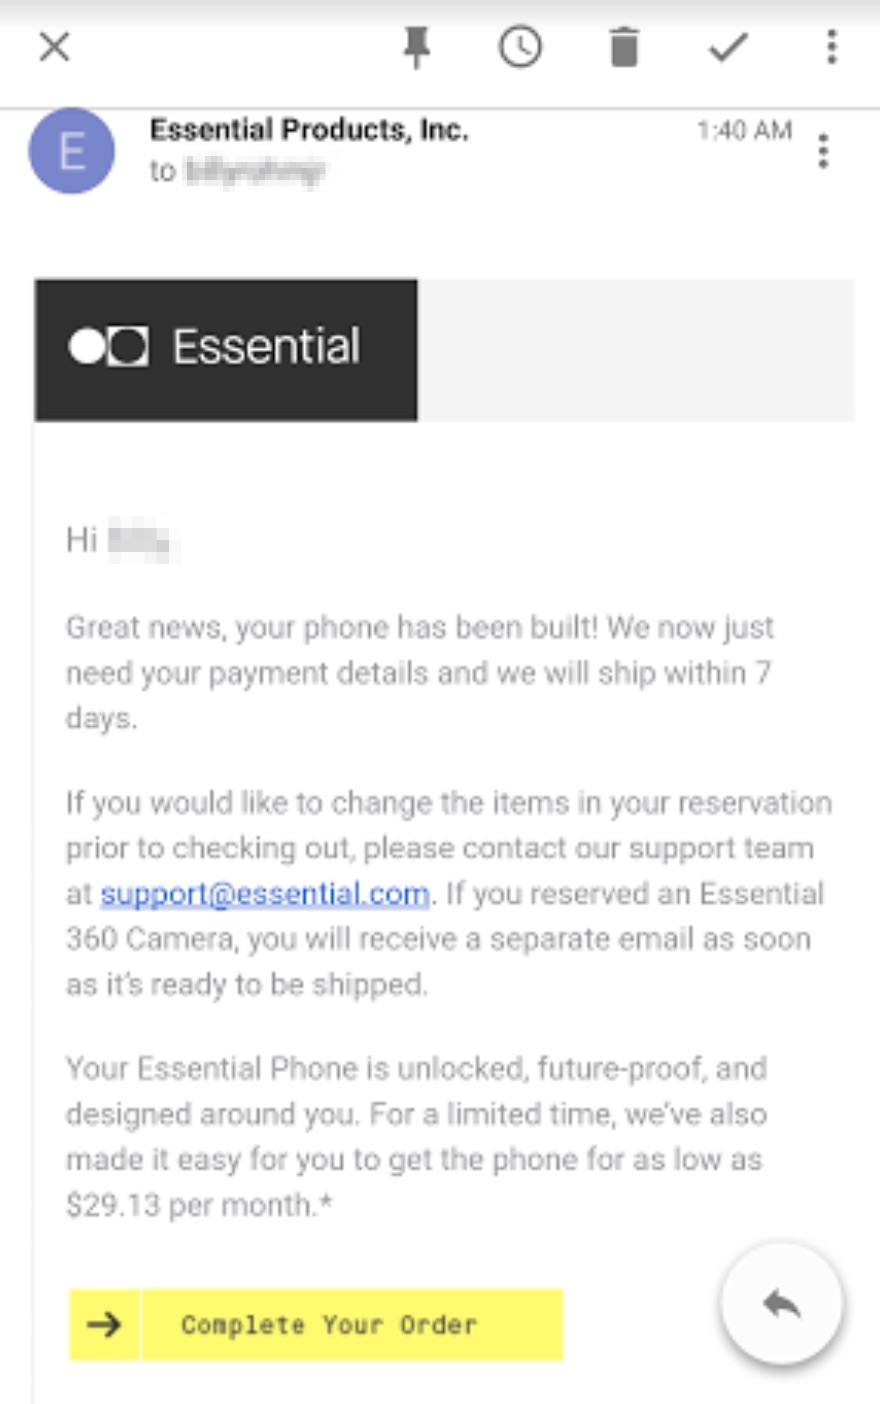 Essential Phone Is Ready For Purchase, But Only In Black